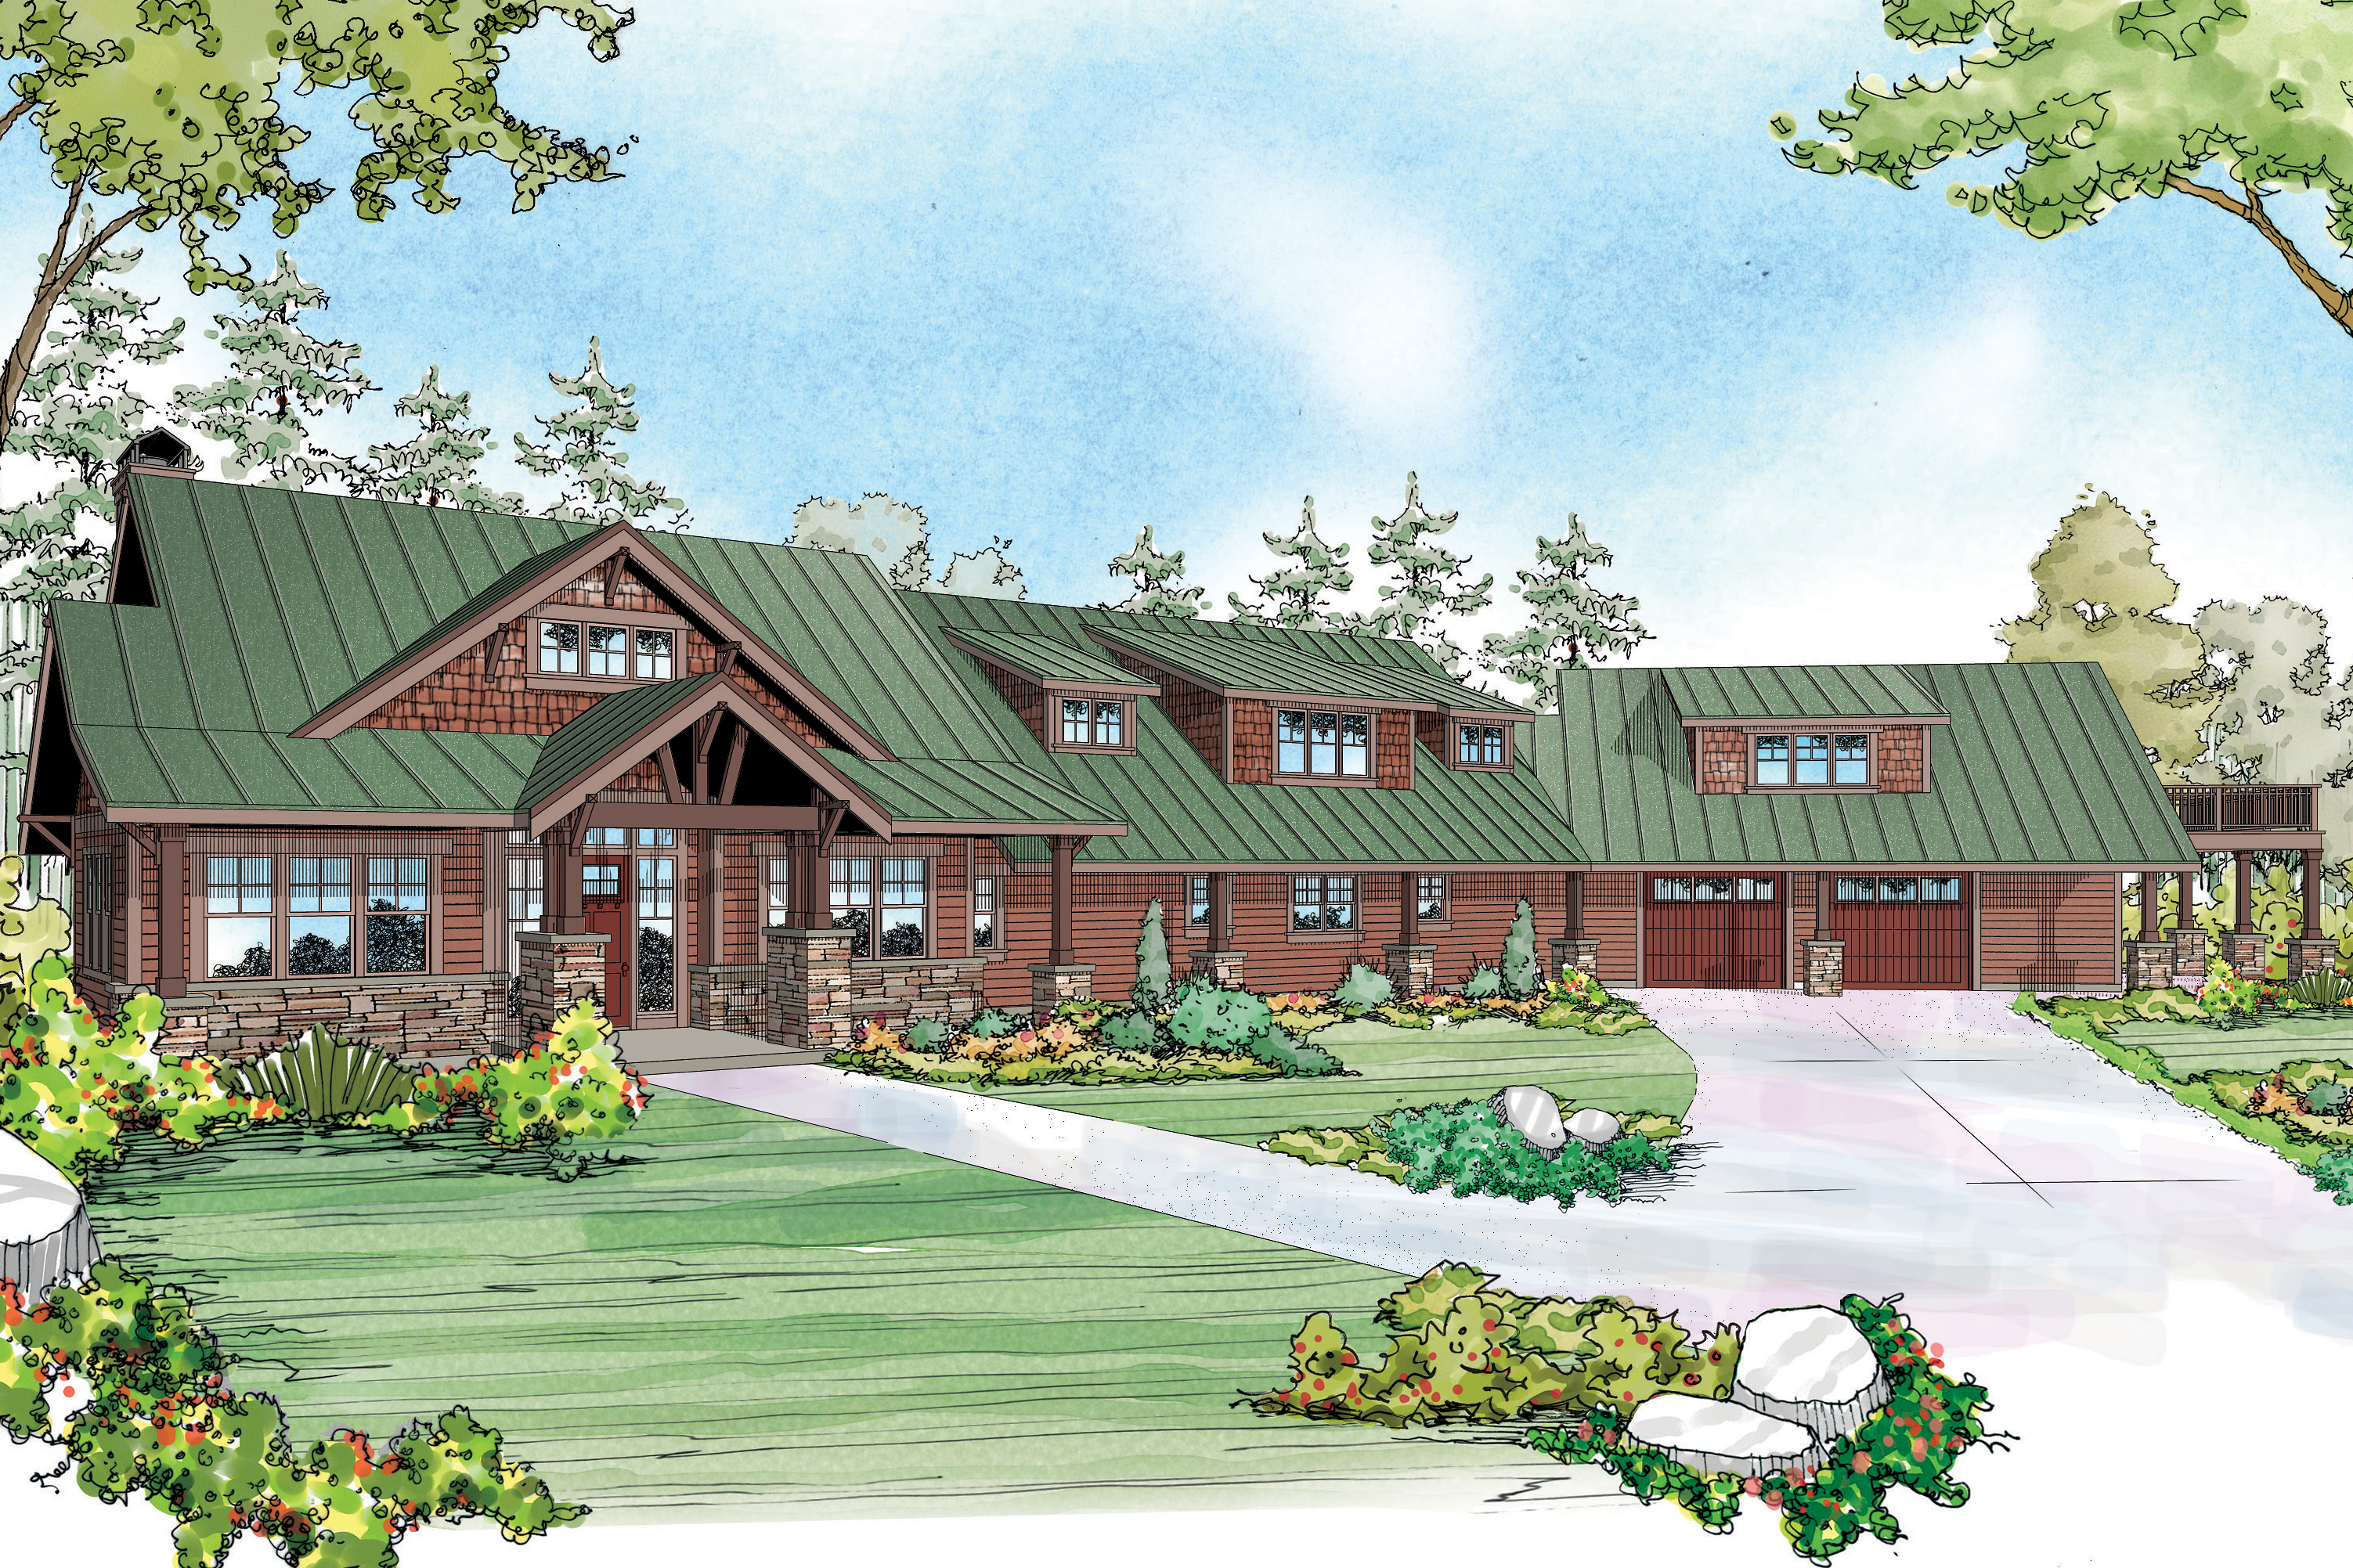 Lodge Style House Plan, Home Plan, Barnhart 30-946, New Plan, Luxury House Plan